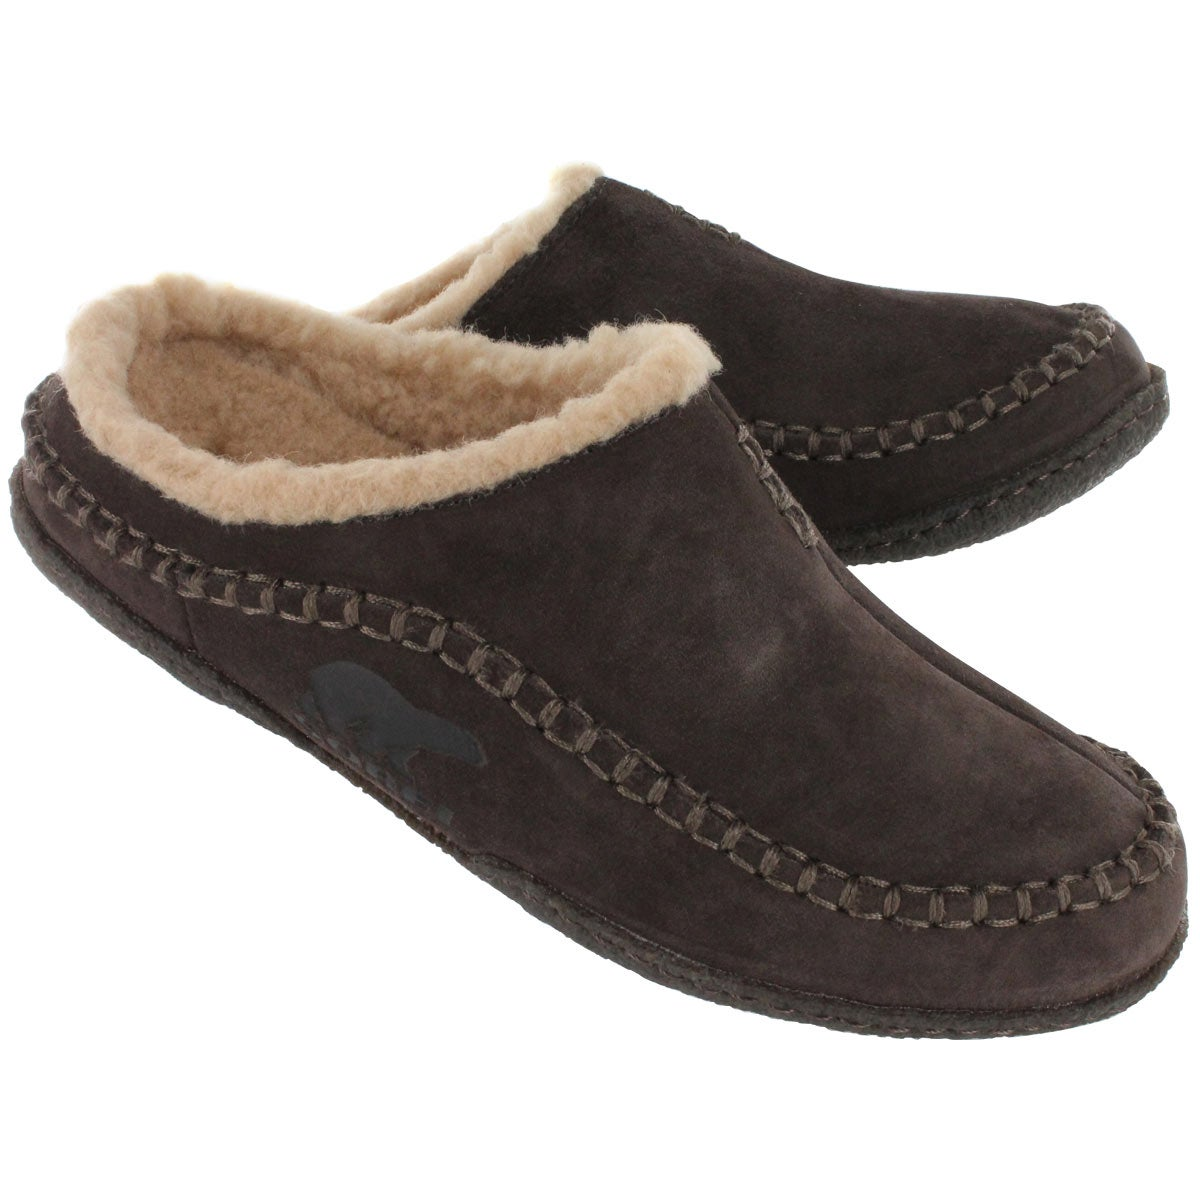 Mns Falcon Ridge bark open back slipper